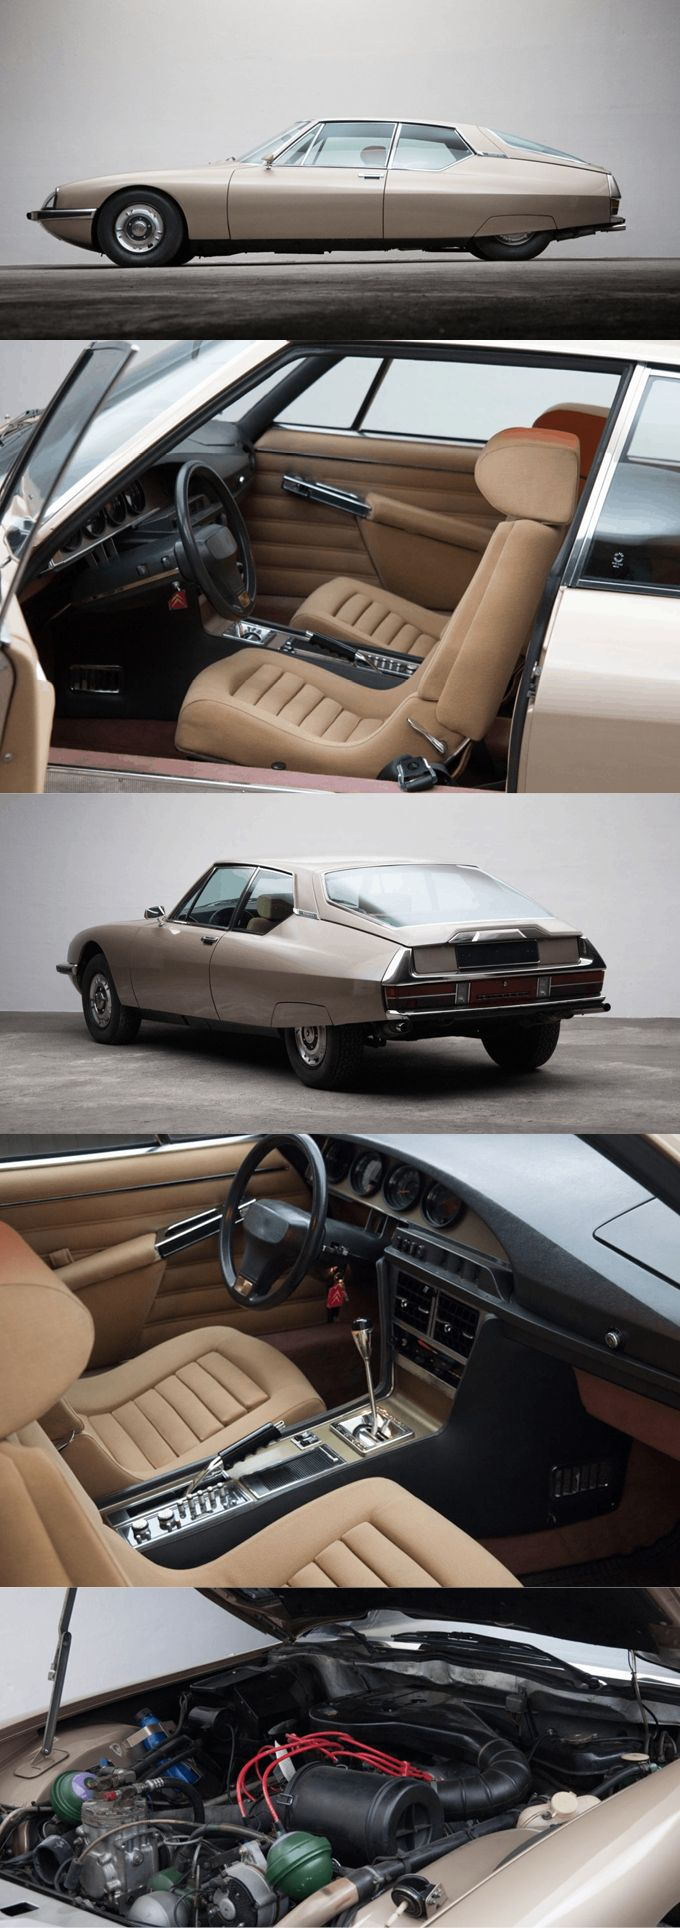 1971 Citroën SM / beige champagne / France / for sale at thecoolcars.nl